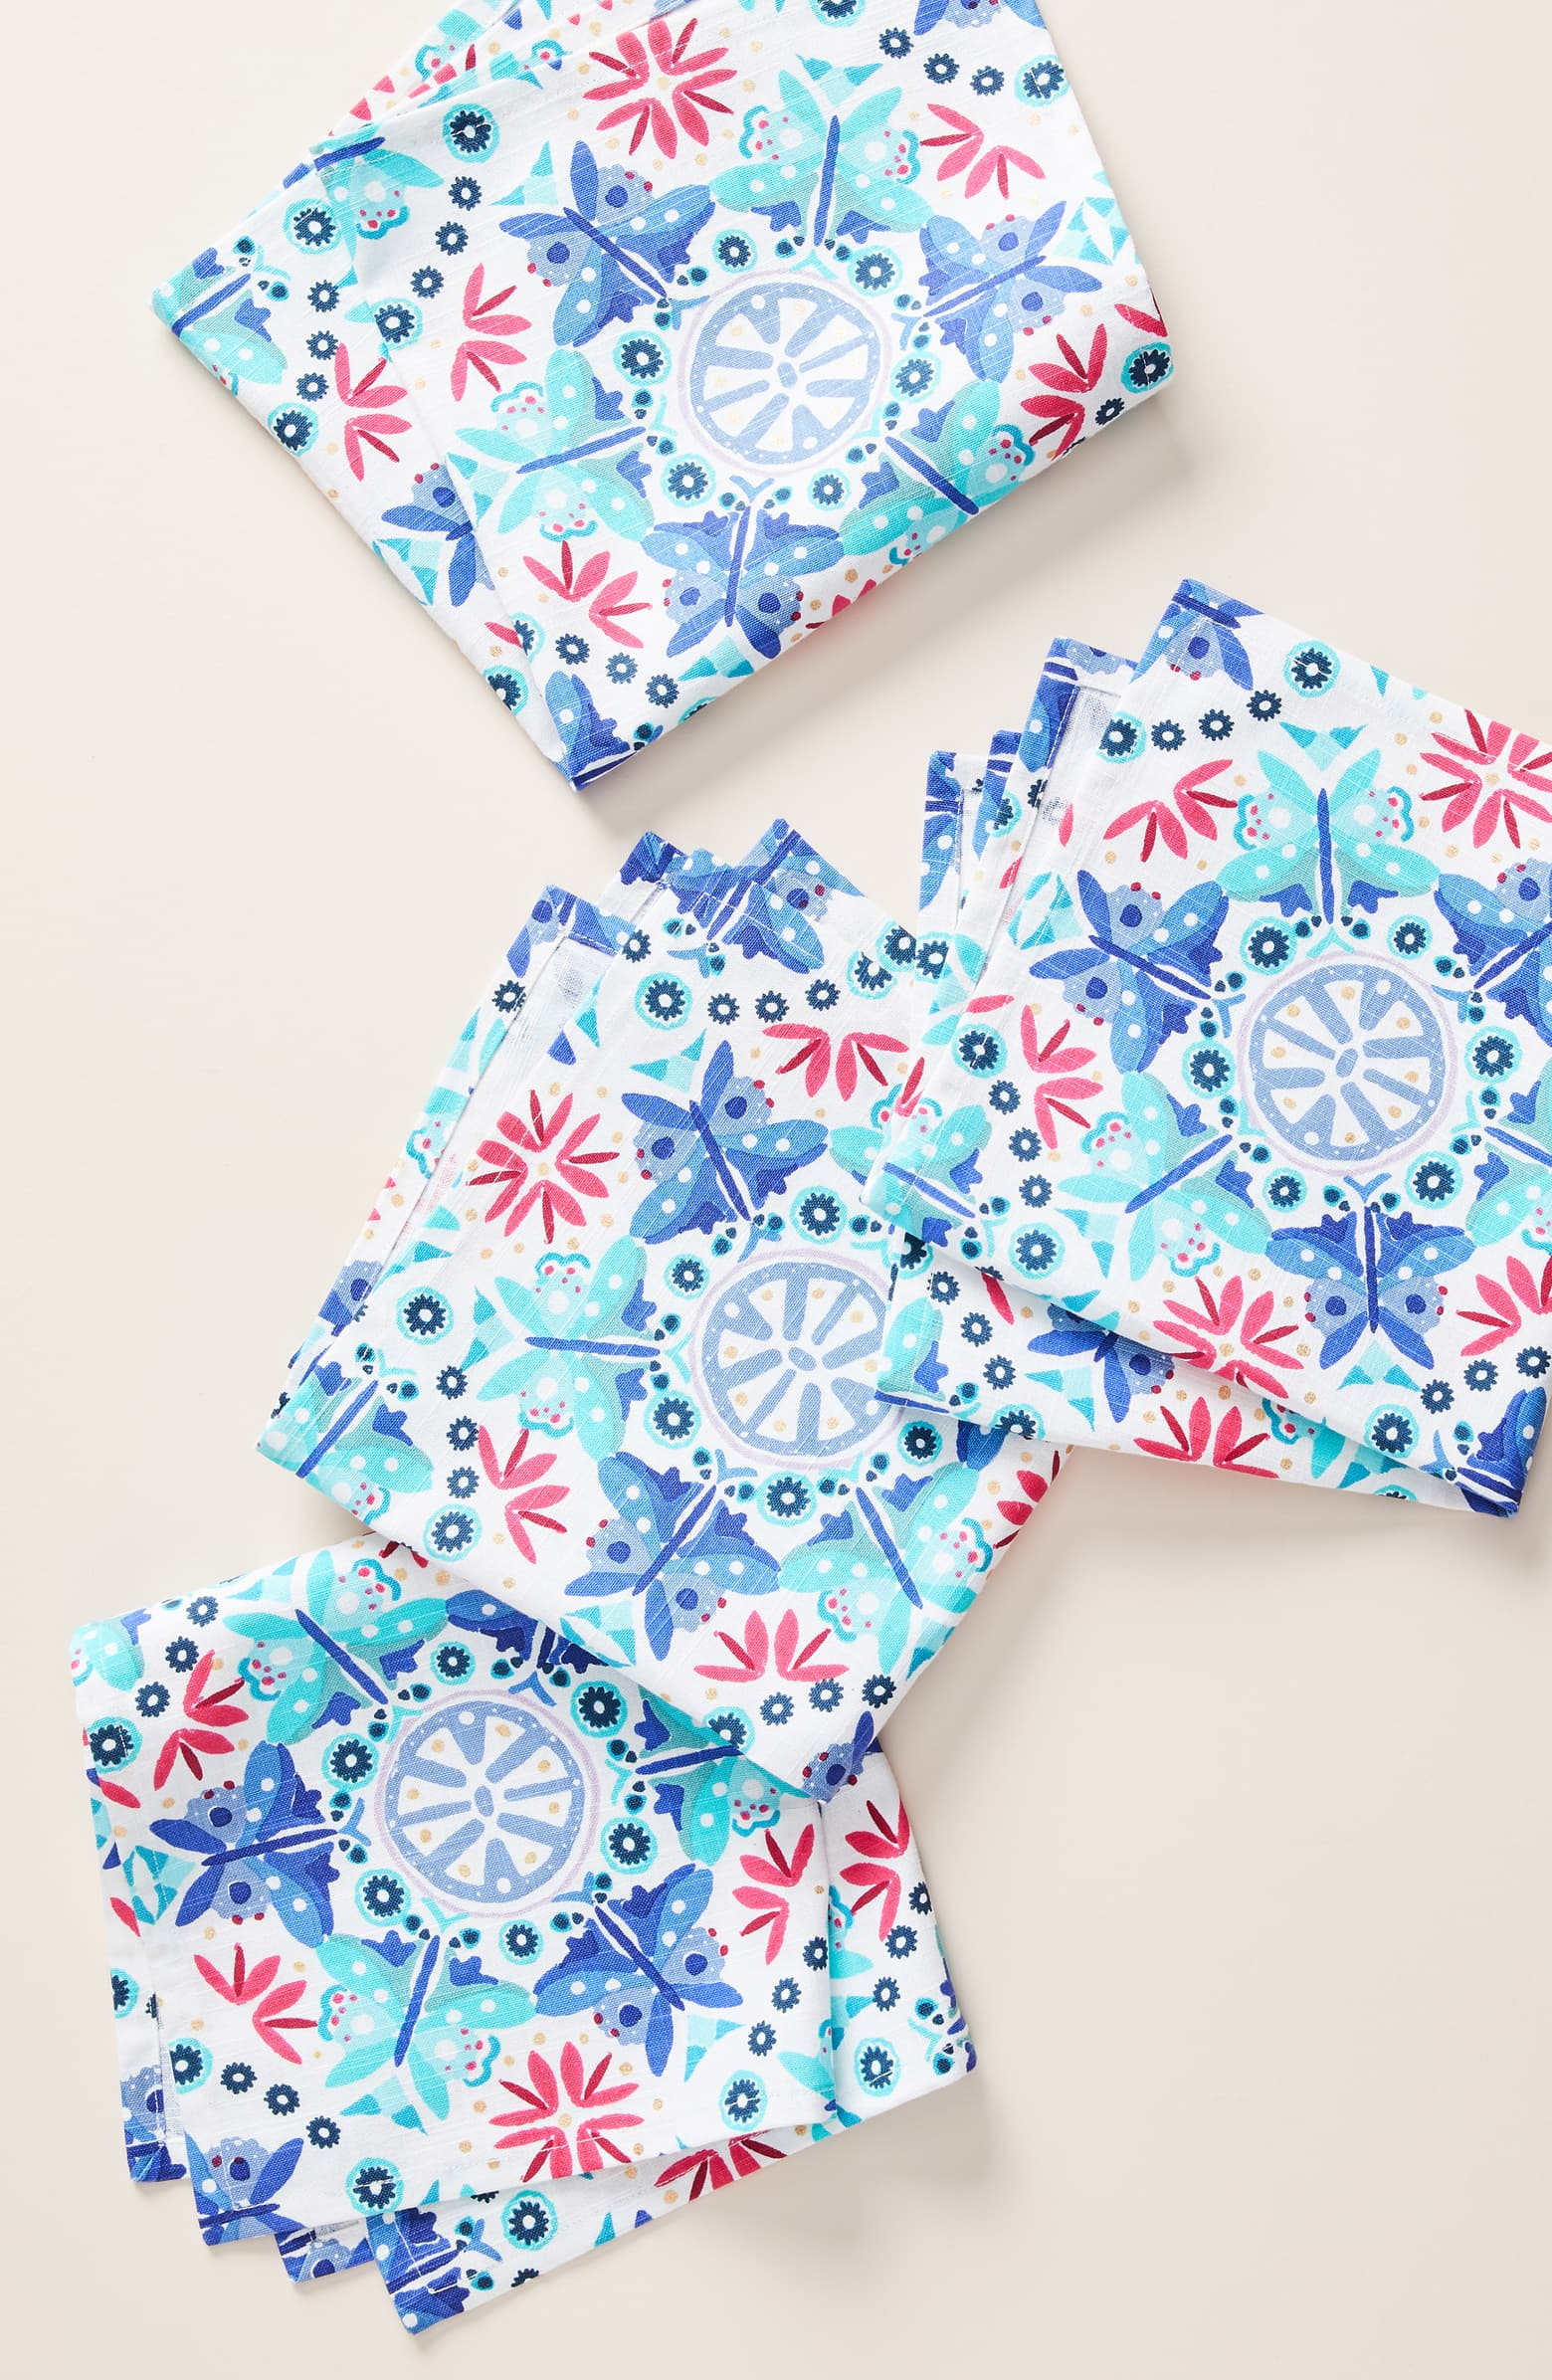 Anthropologie Nesma Set of 4 Napkins